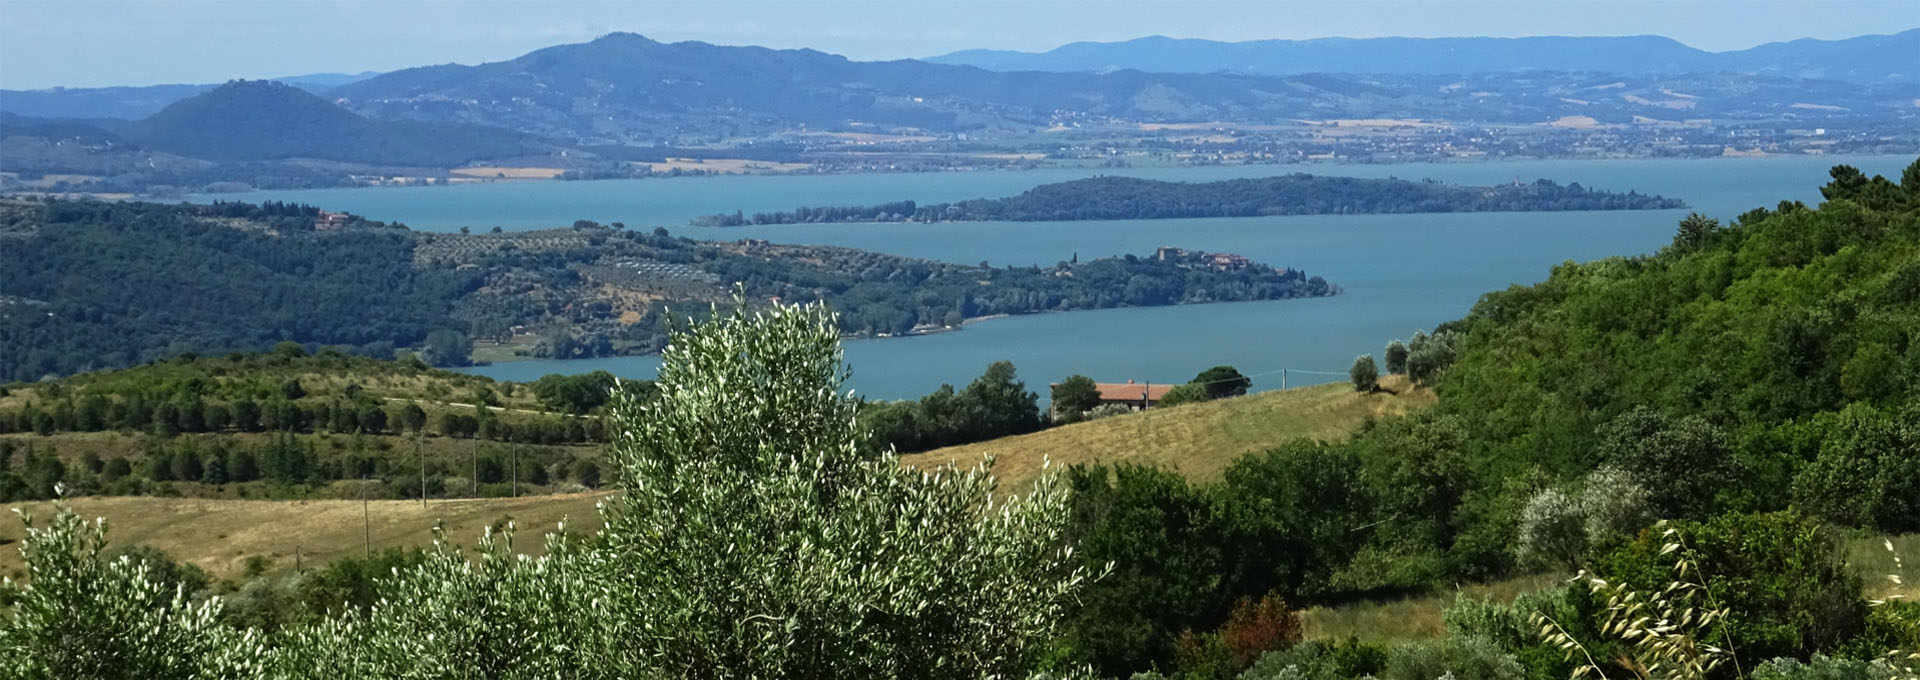 The Umbria PDO: Colli del Trasimeno and Colli Orvietani